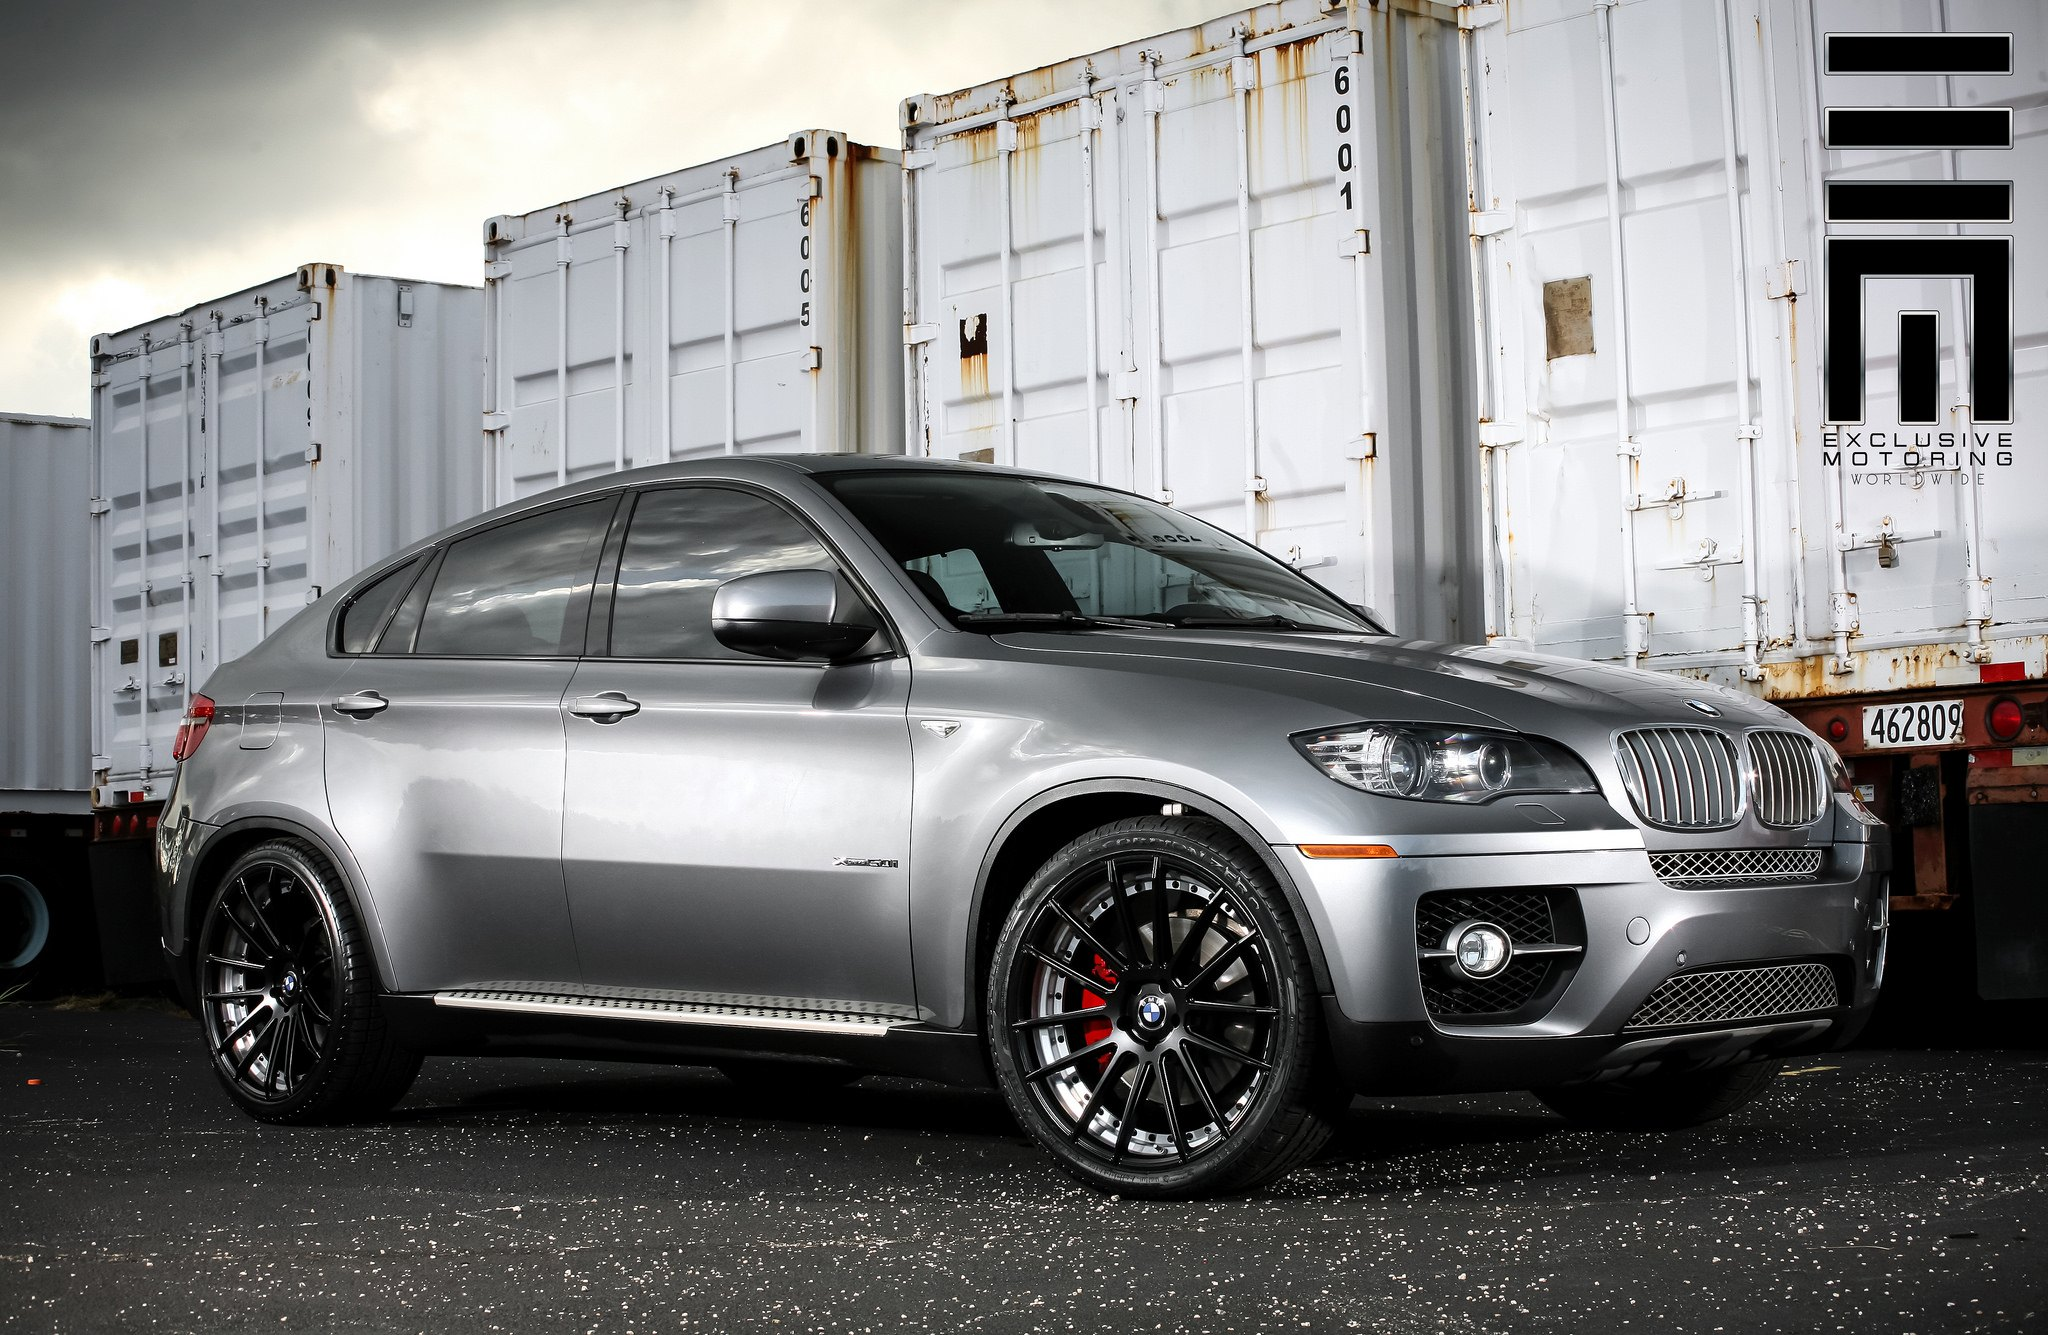 Metallic Gray Bmw X6 On Black Wheels By Exclusive Motoring